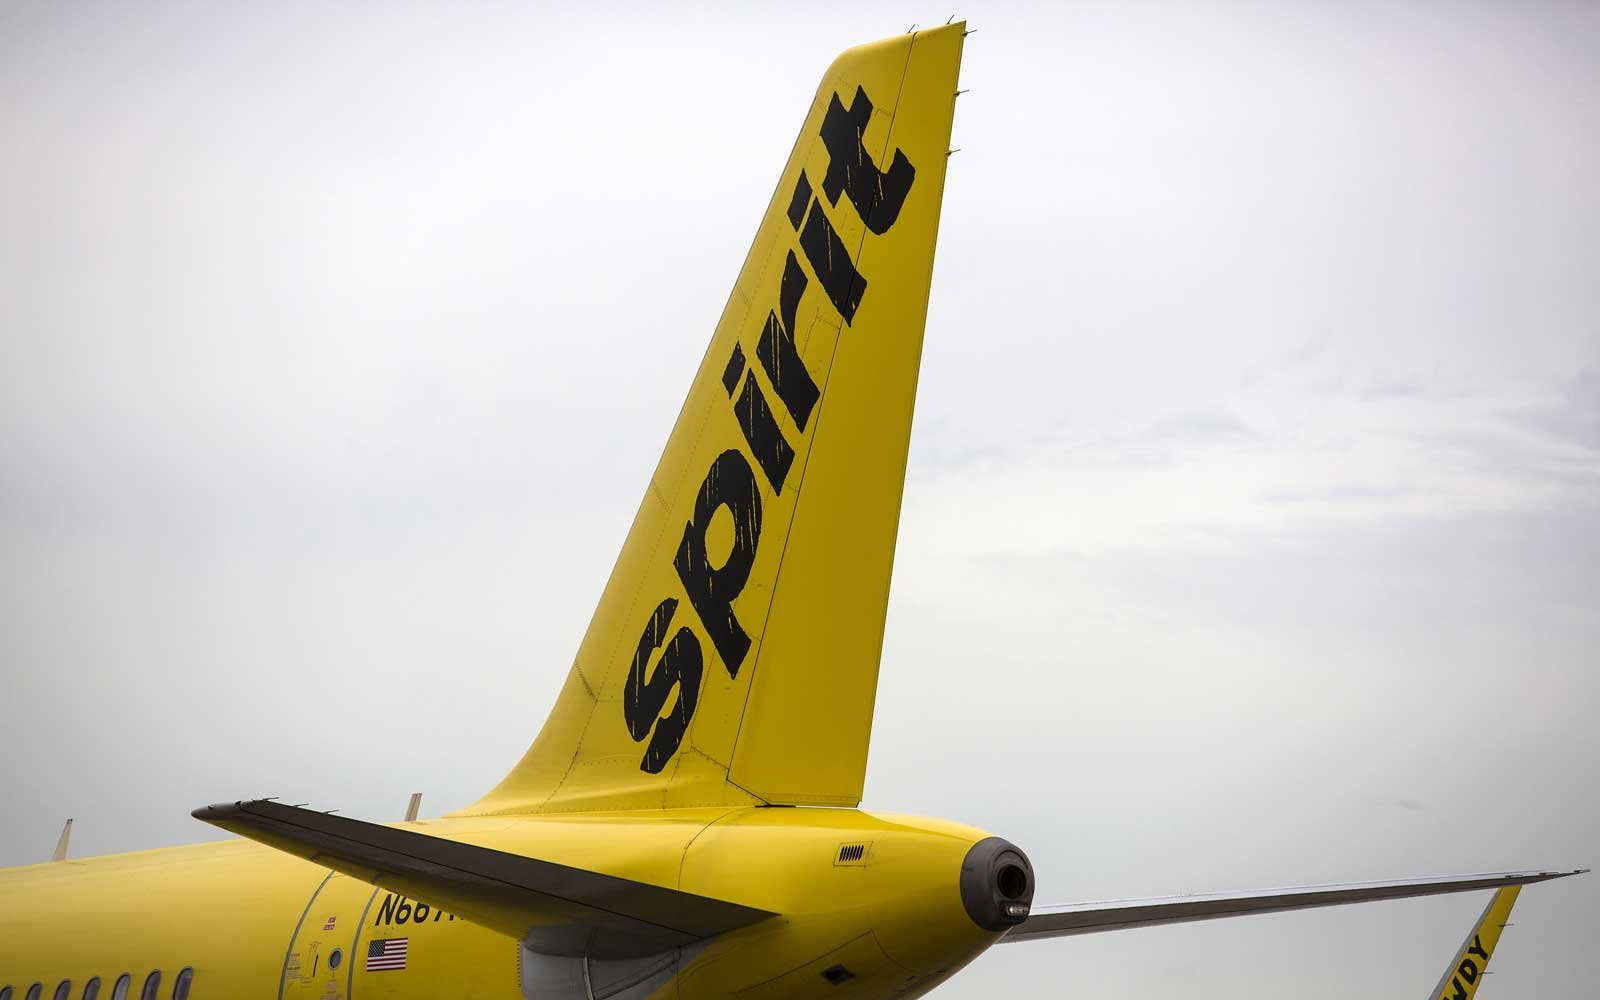 Spirit Airlines Plane at gate